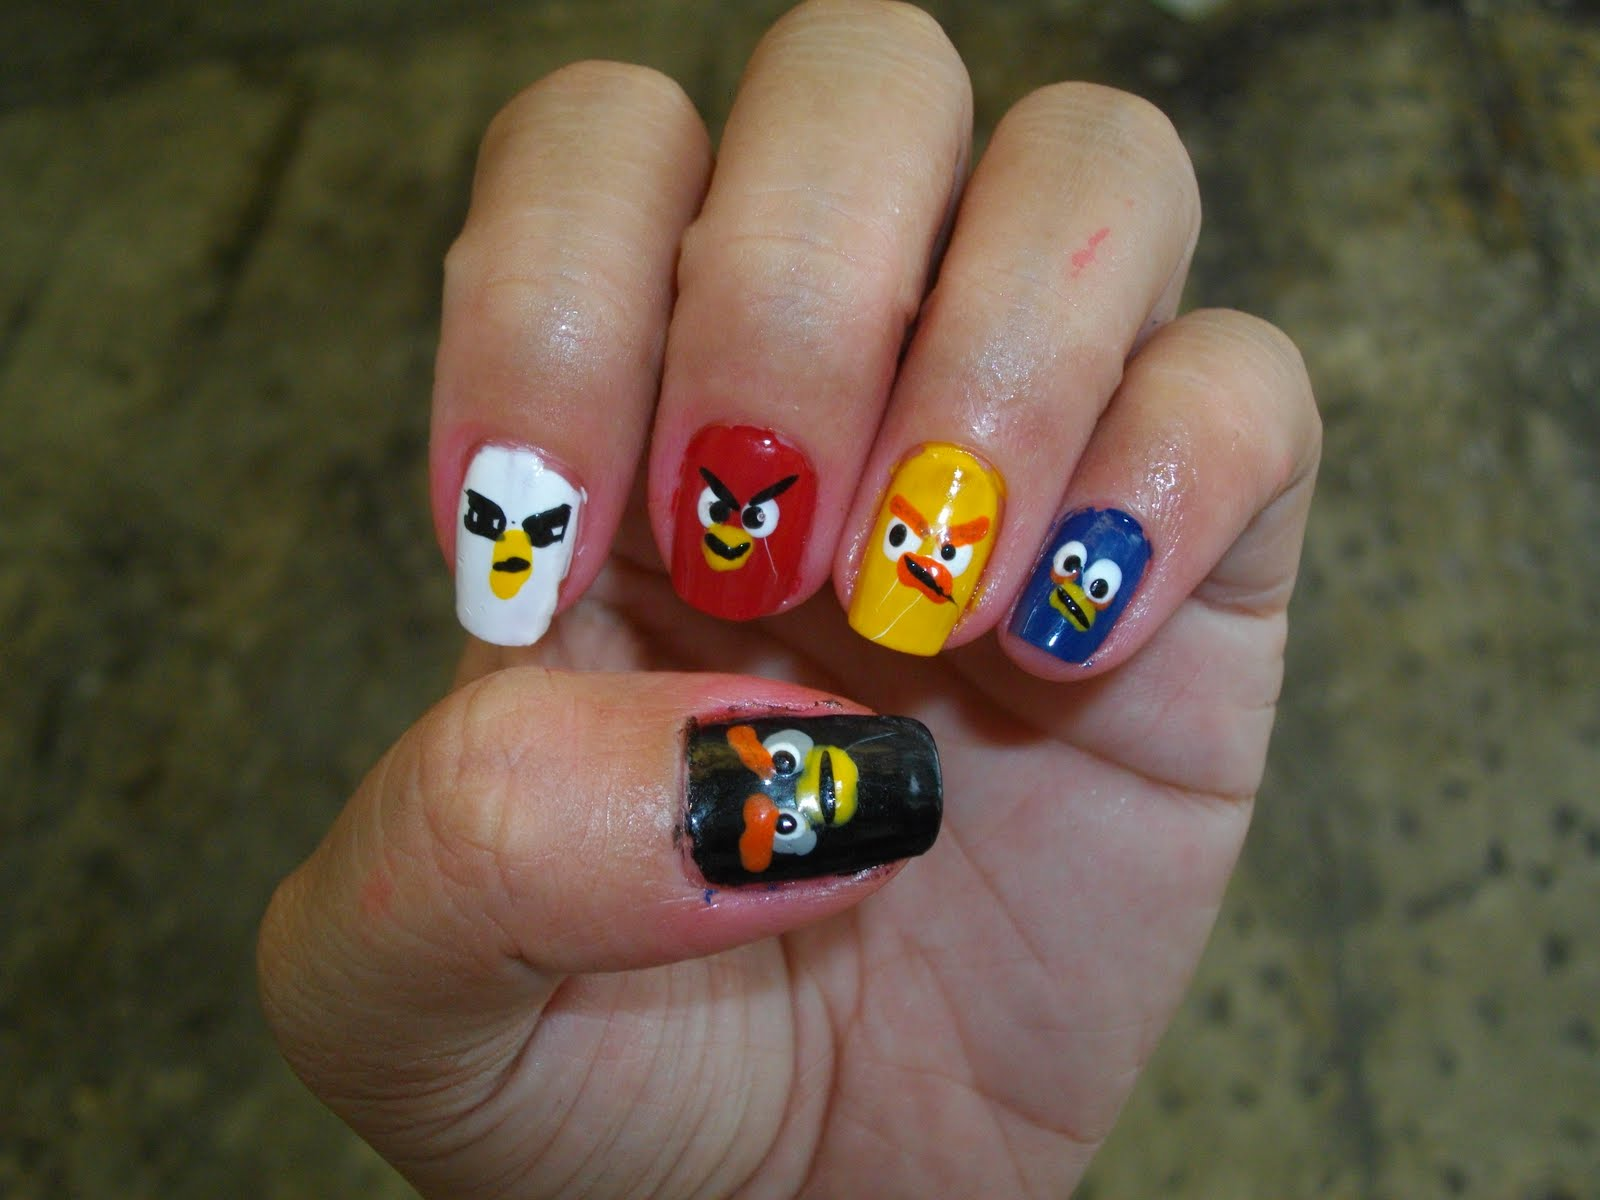 ☠ istaylista ☠: Lin\'s Version of Angry Birds Nails